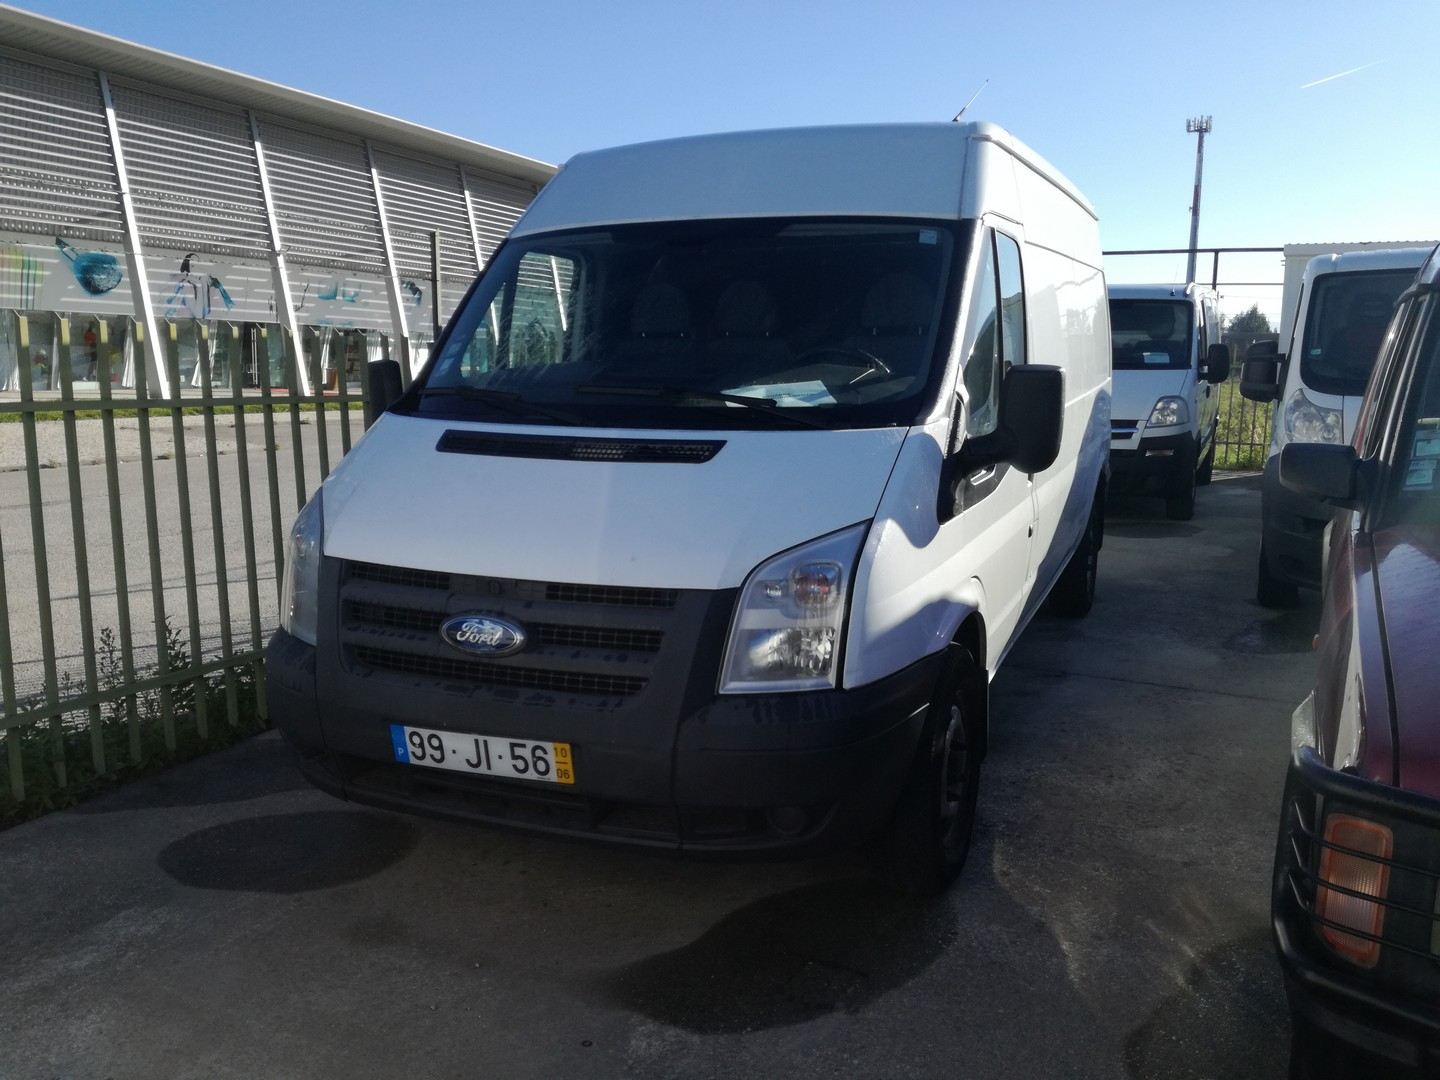 Ford - Transit 2.4TDCI 140CV Chassis Longo IVA Dedútivel